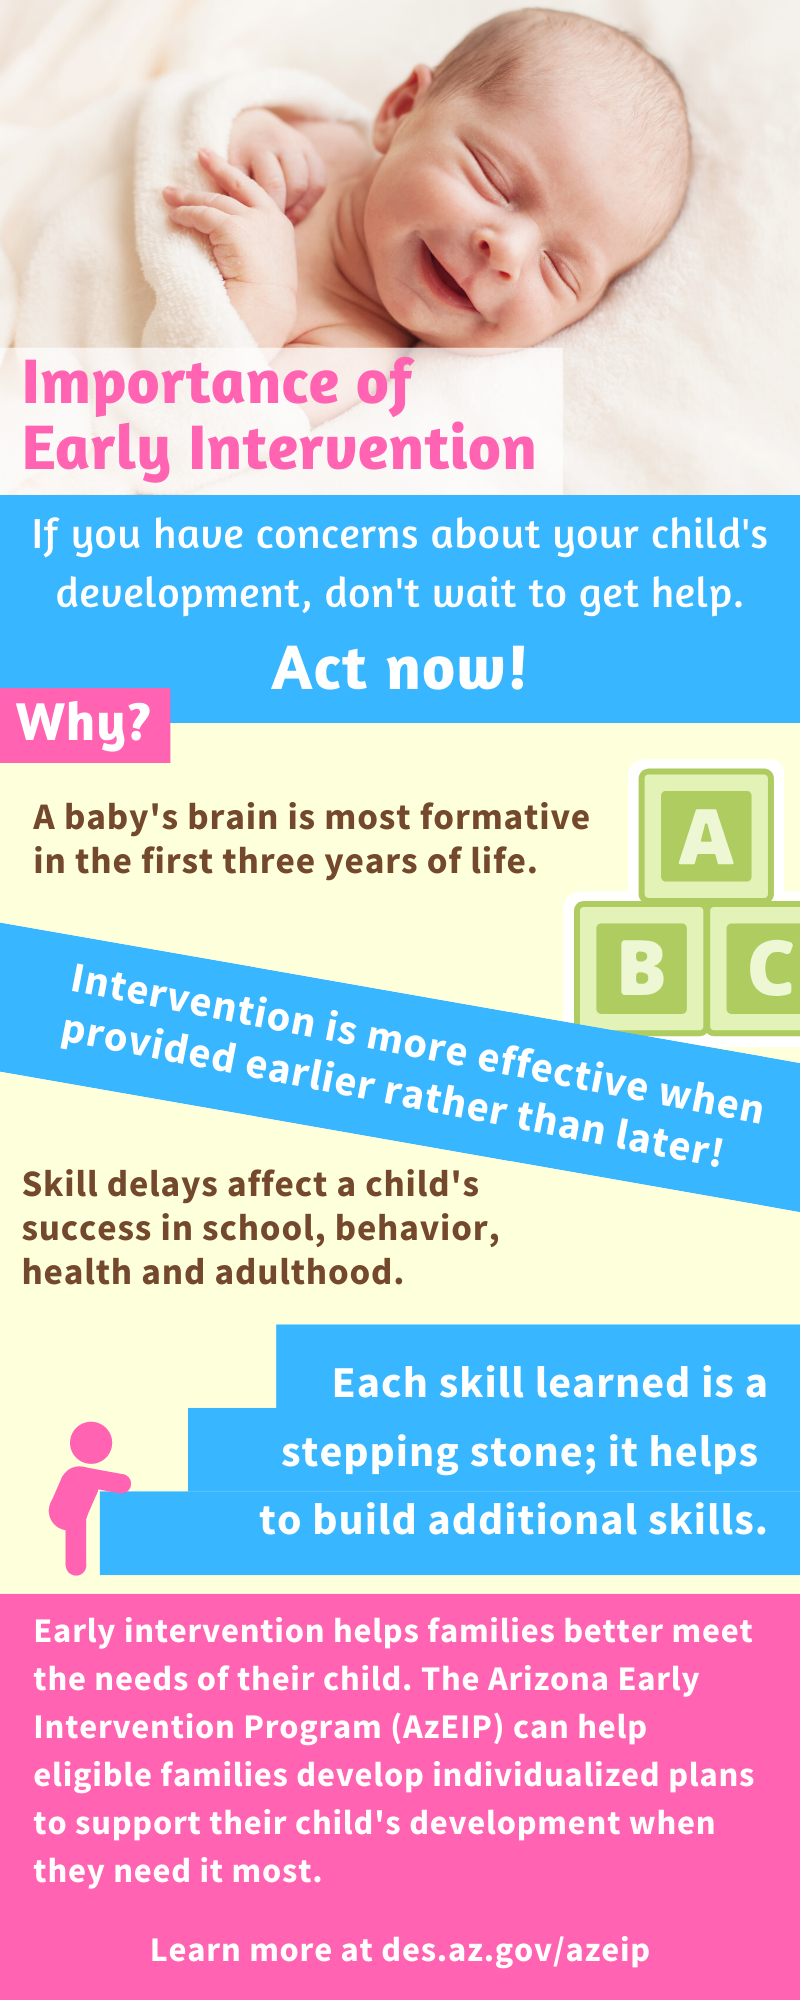 Facts and figures about early intervention